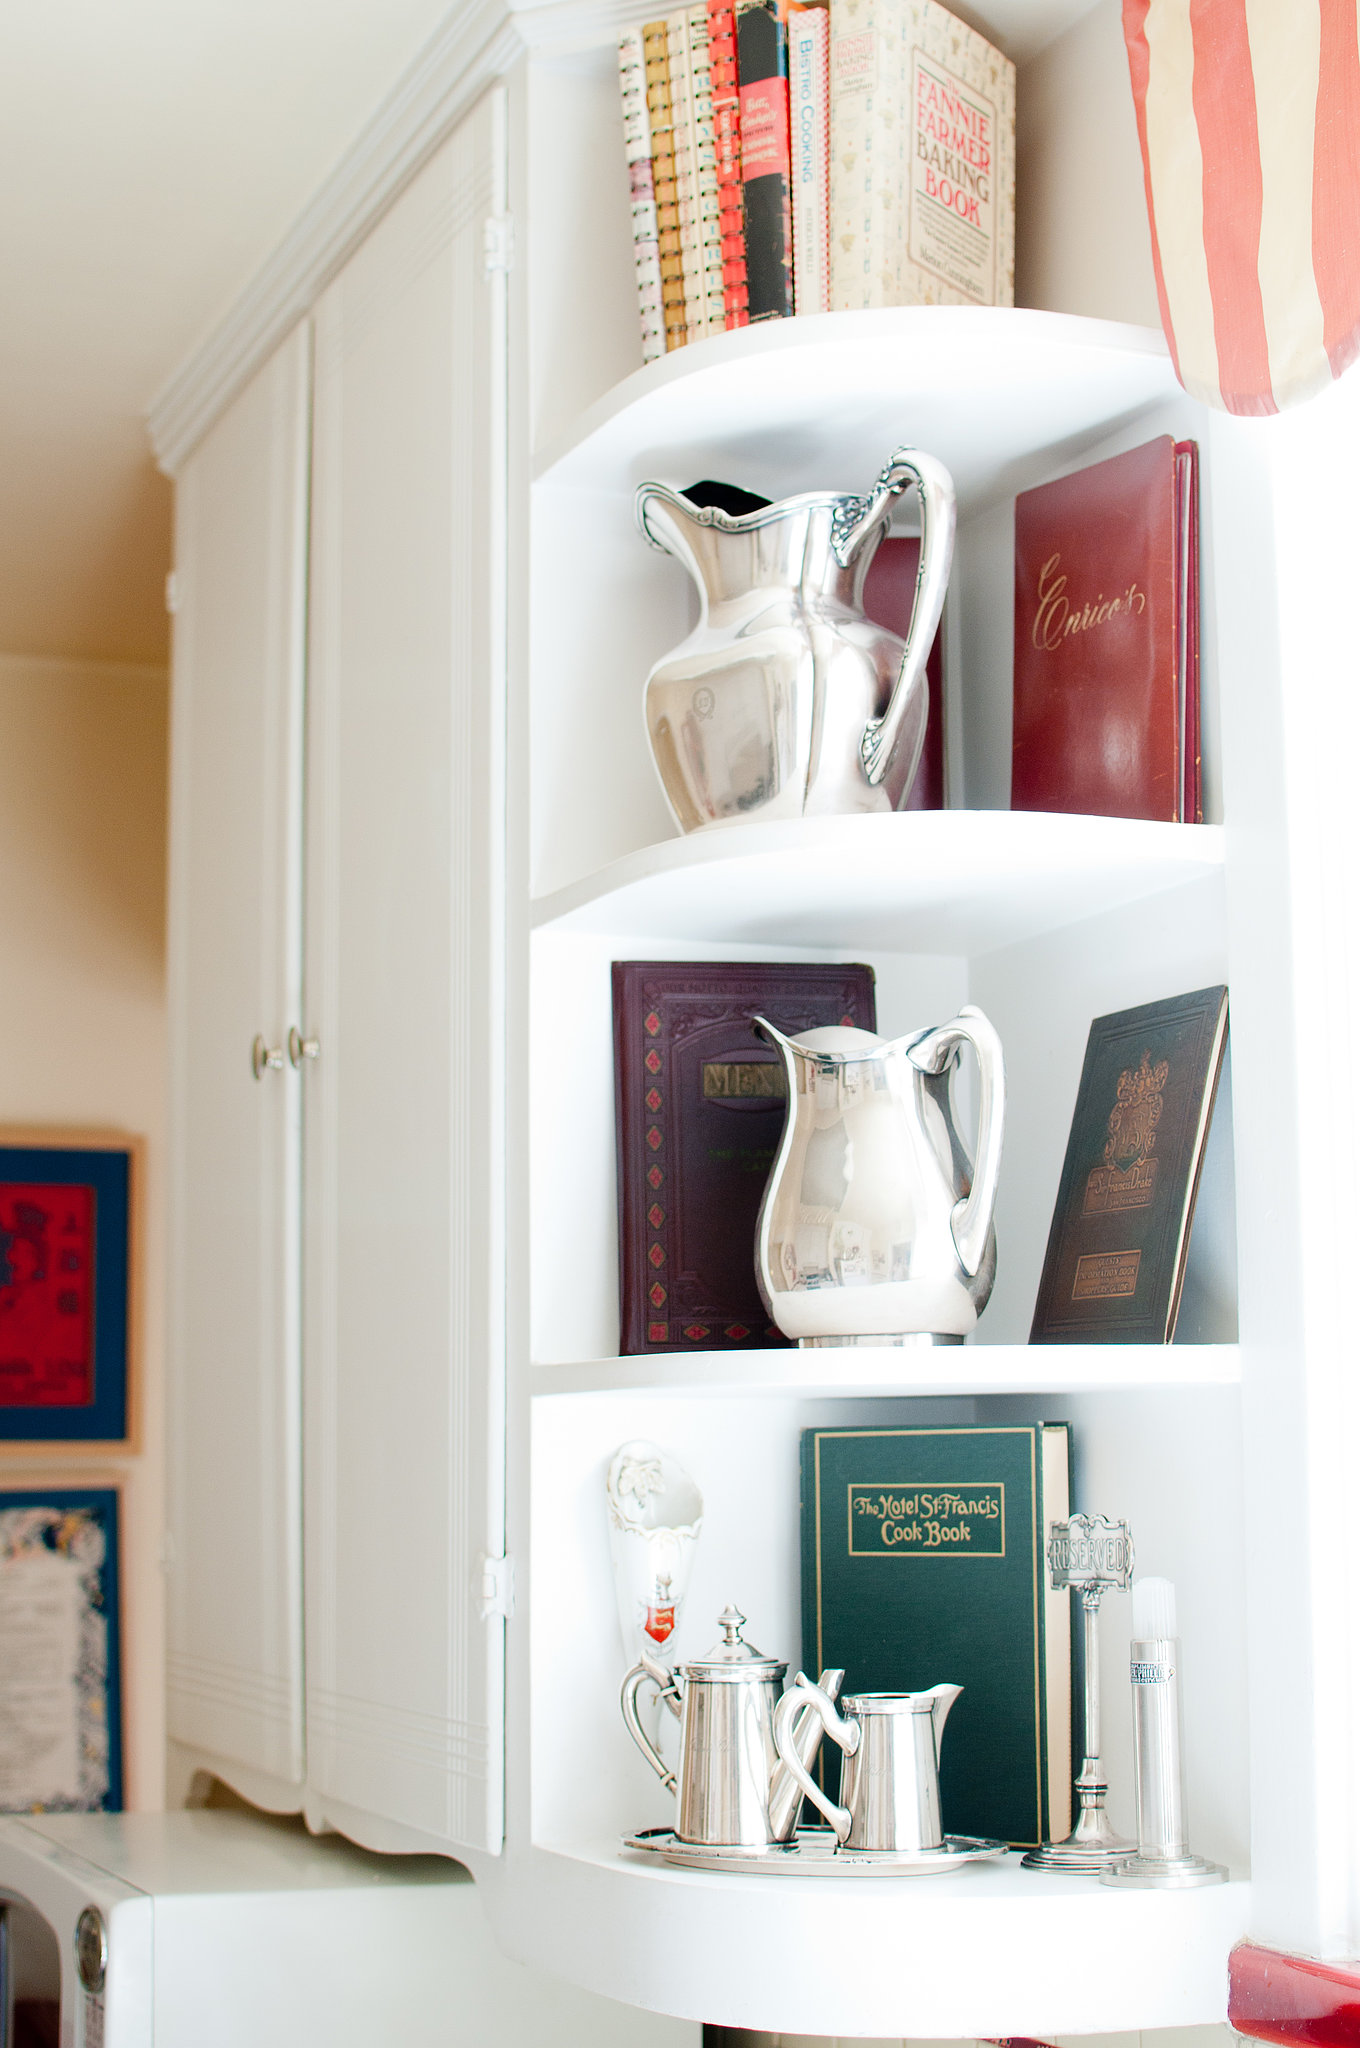 Lynn decorates her kitchen built-ins with old hotel silver, menus, and cookbooks.  Source: Kassie Borreson